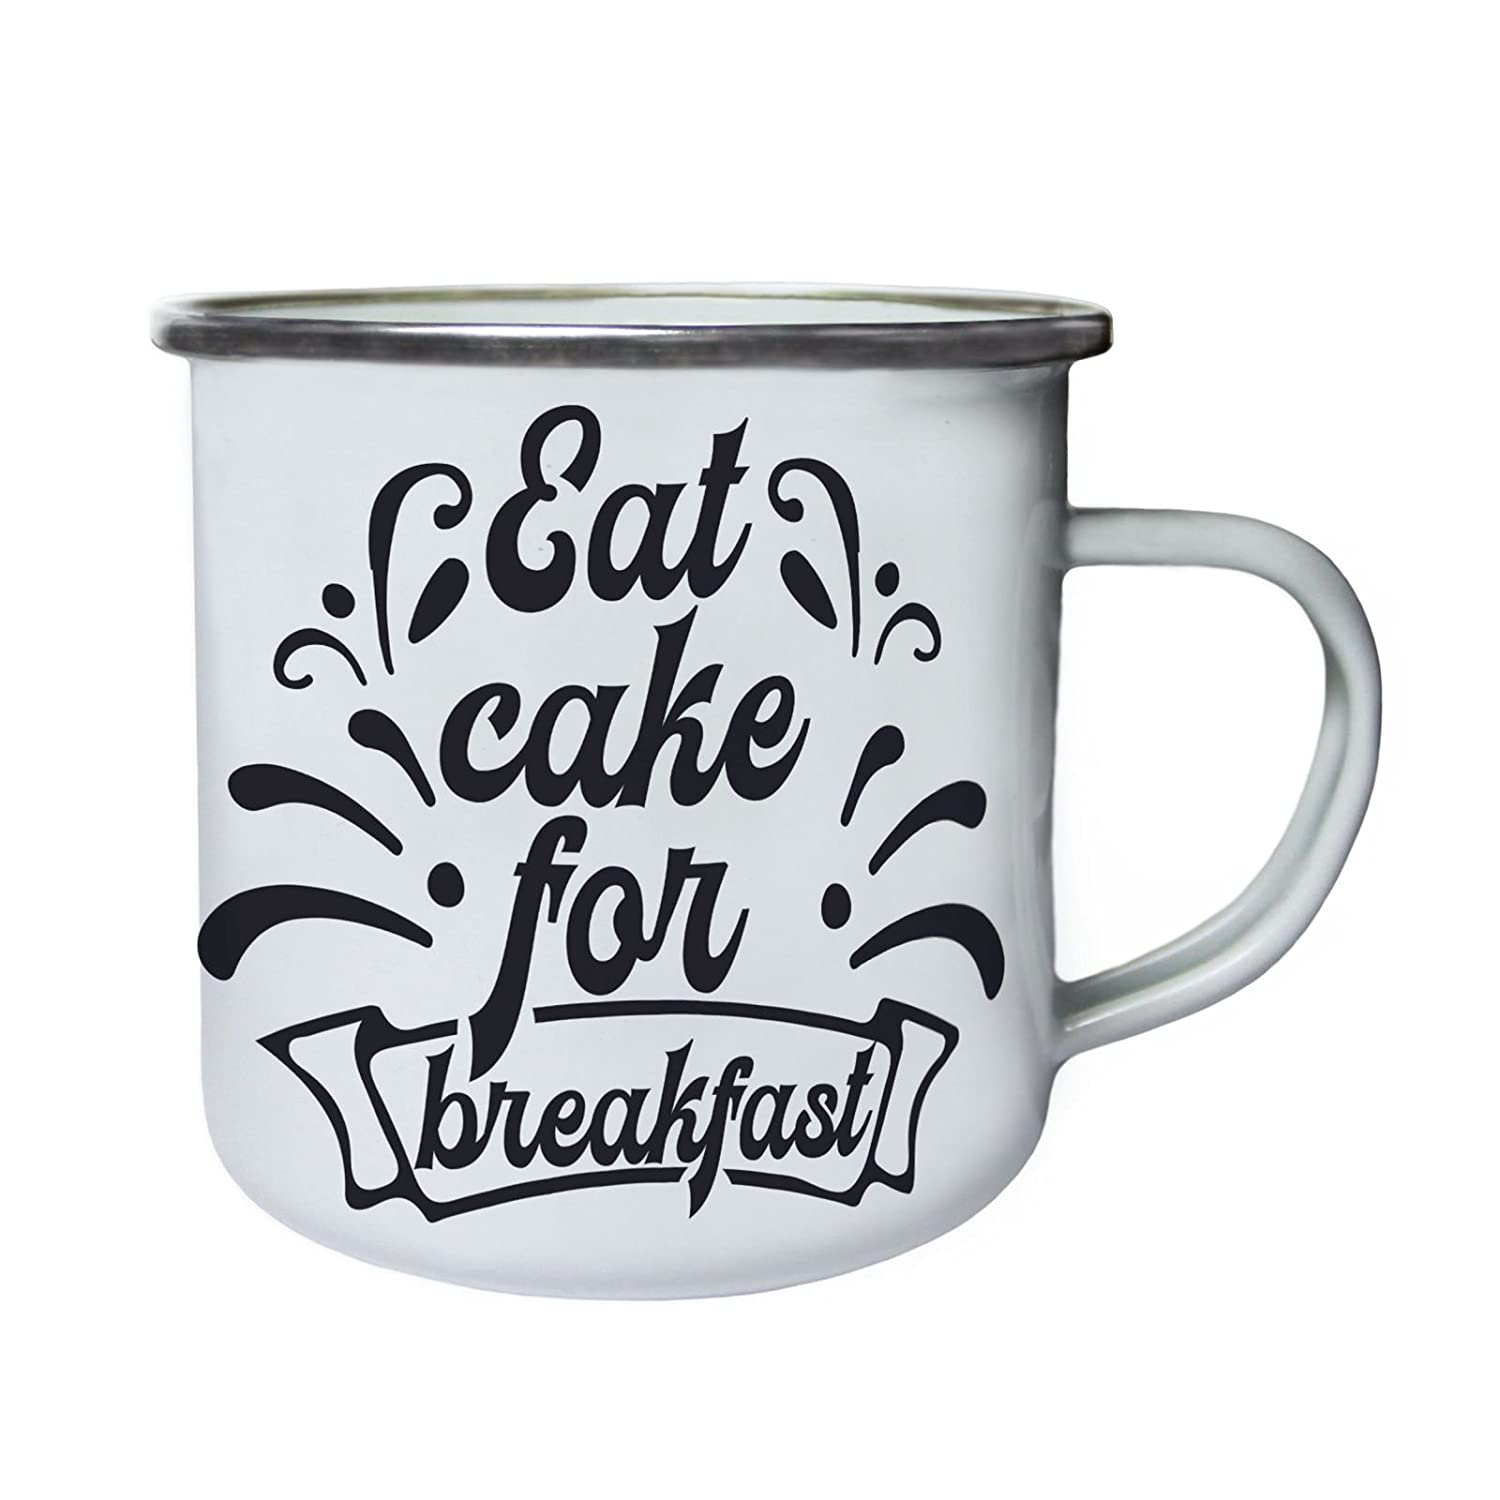 Eat cake for breakfast Retro,Tin, Enamel 10oz Mug bb331e INNOGLEN